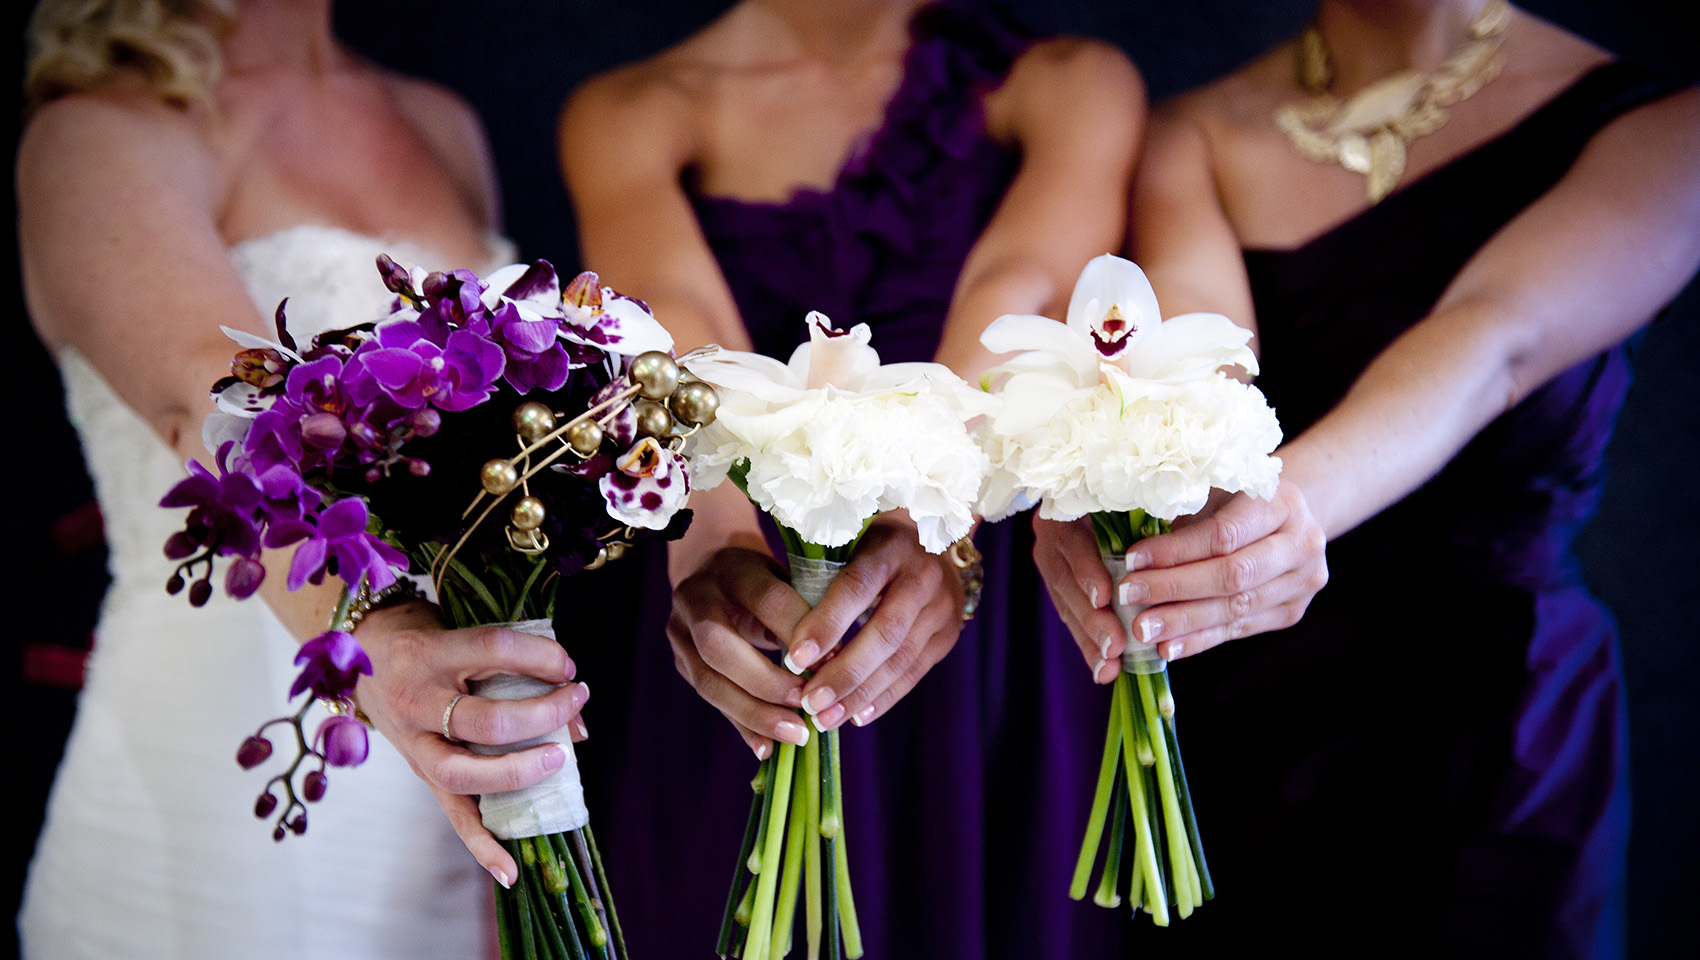 bridal party with bouquet of flowers